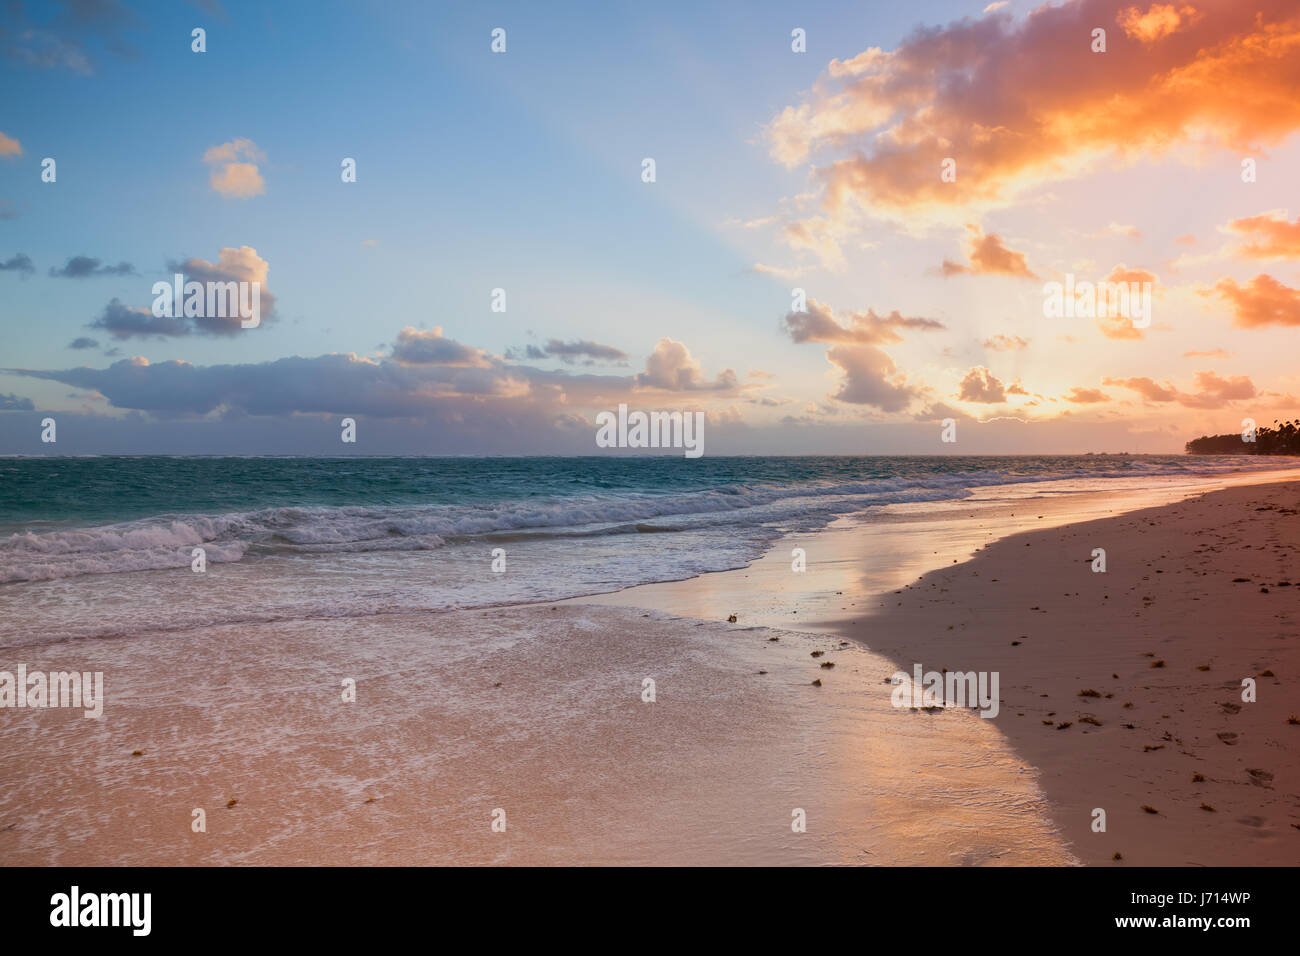 Orange sunrise over Atlantic Ocean coast, Bavaro beach, Hispaniola Island. Dominican Republic, coastal landscape - Stock Image